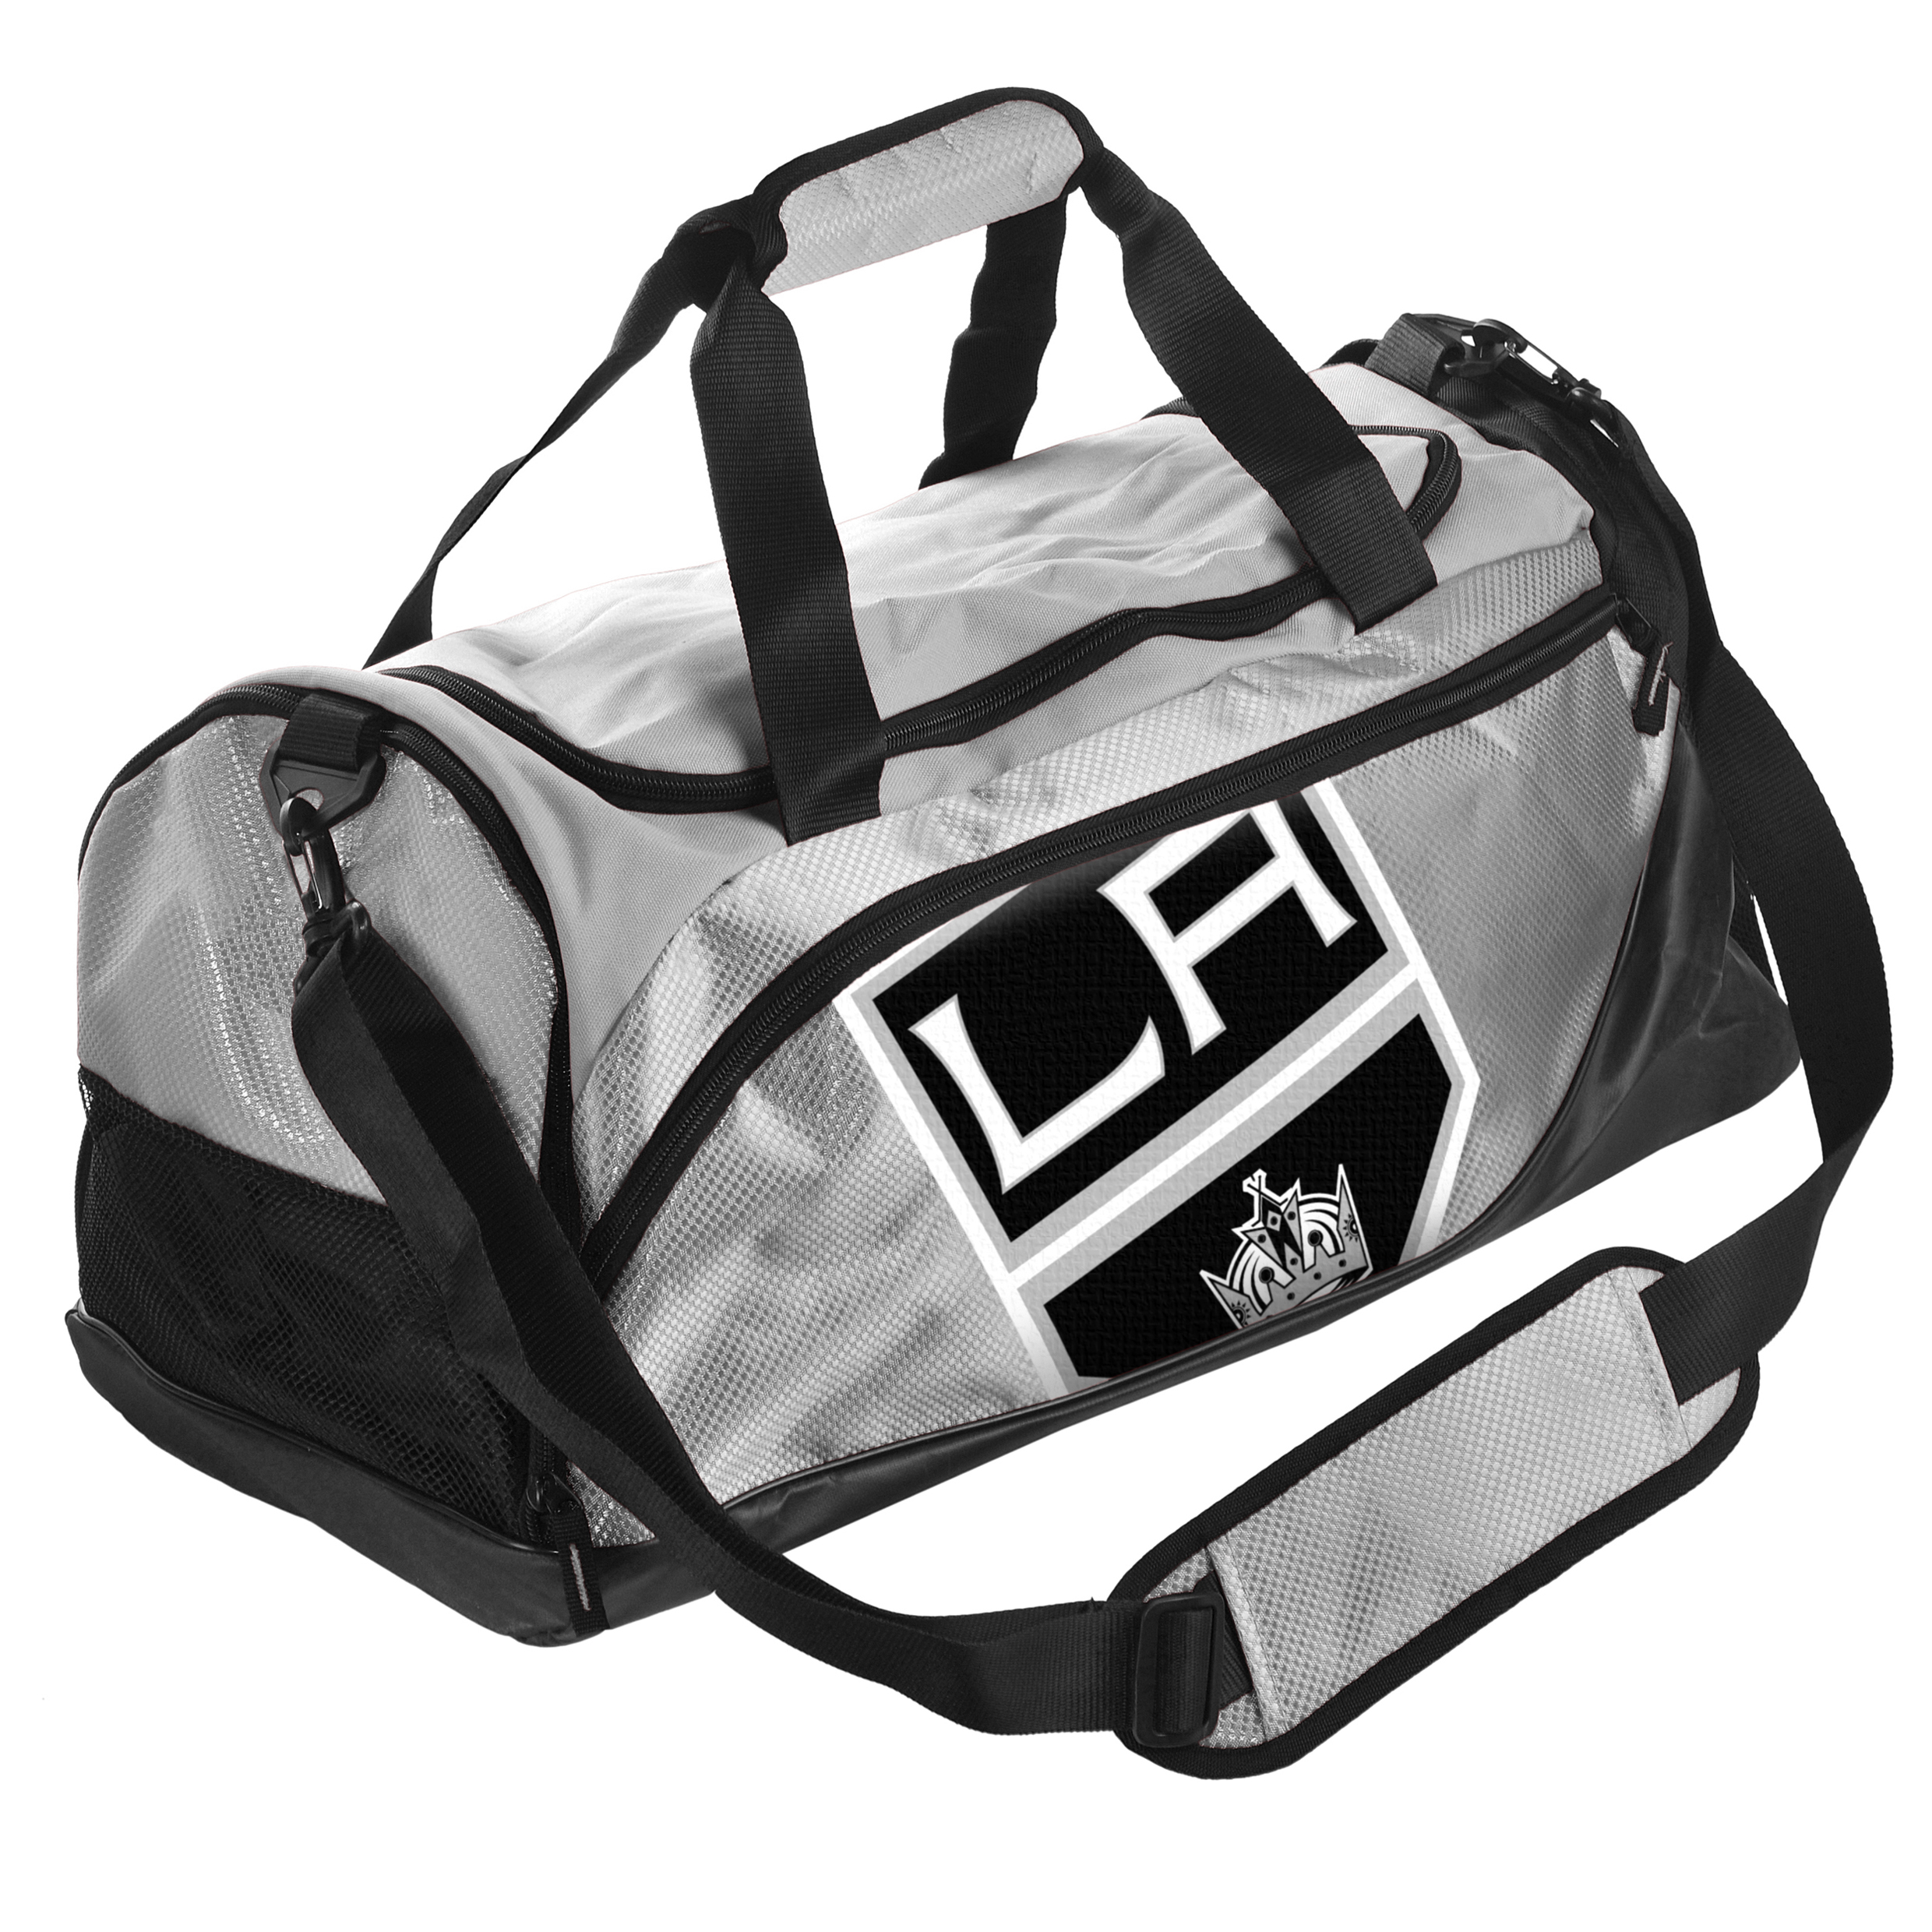 Los Angeles Kings Locker Room Duffle Bag